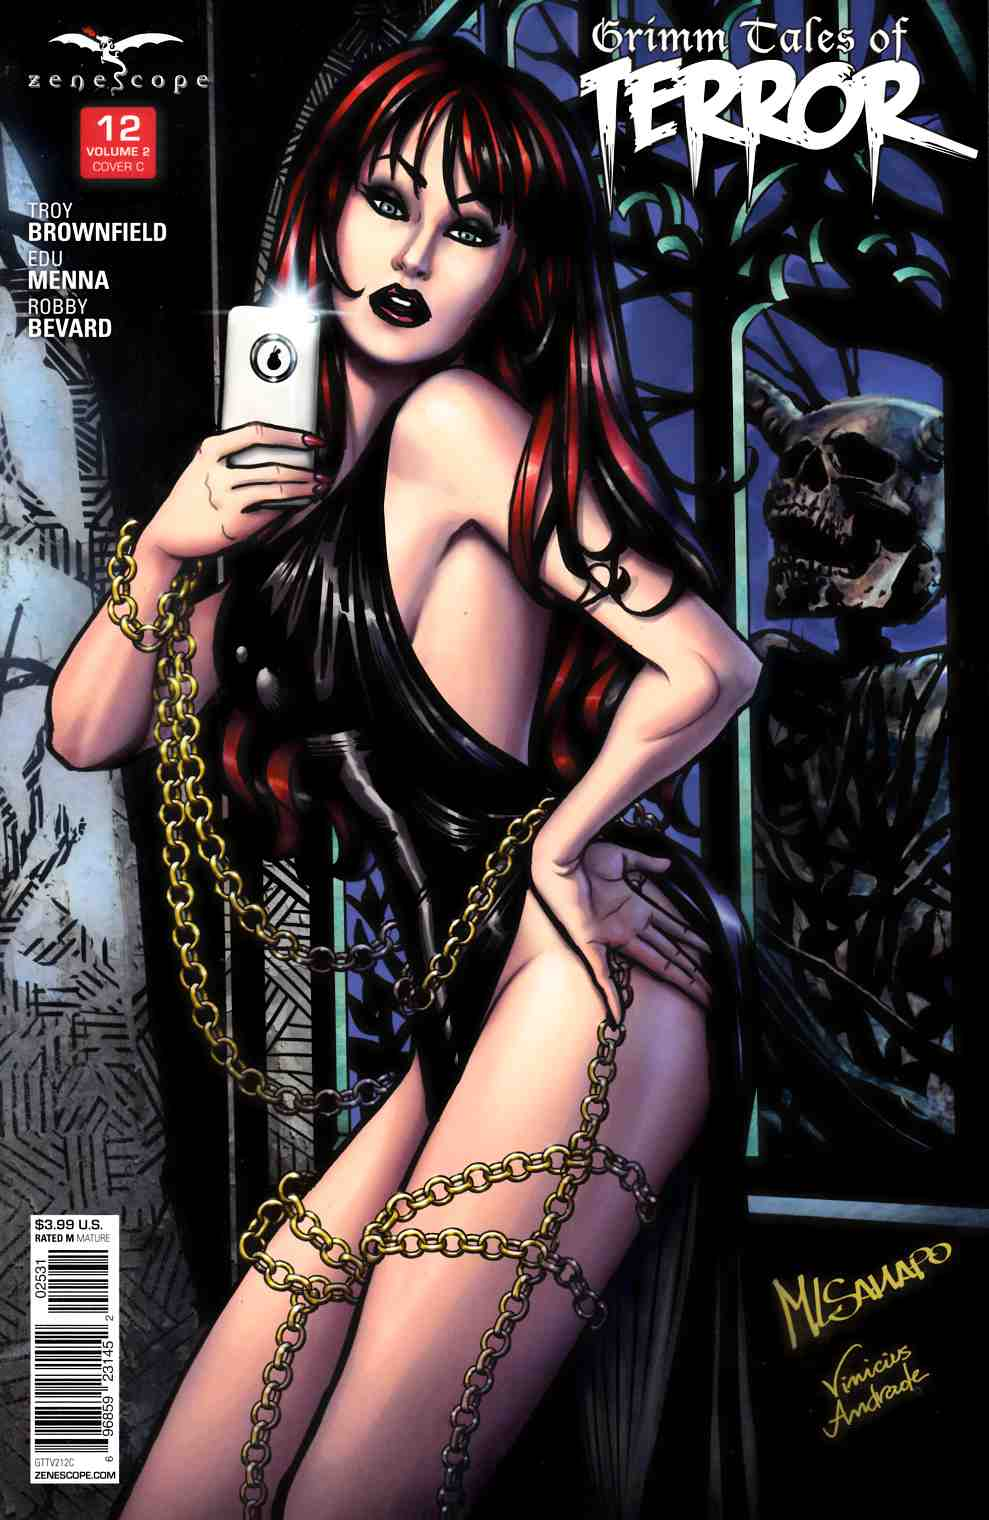 GFT Grimm Tales of Terror Vol 2 #12 Cover C [Zenescope Comic] LARGE